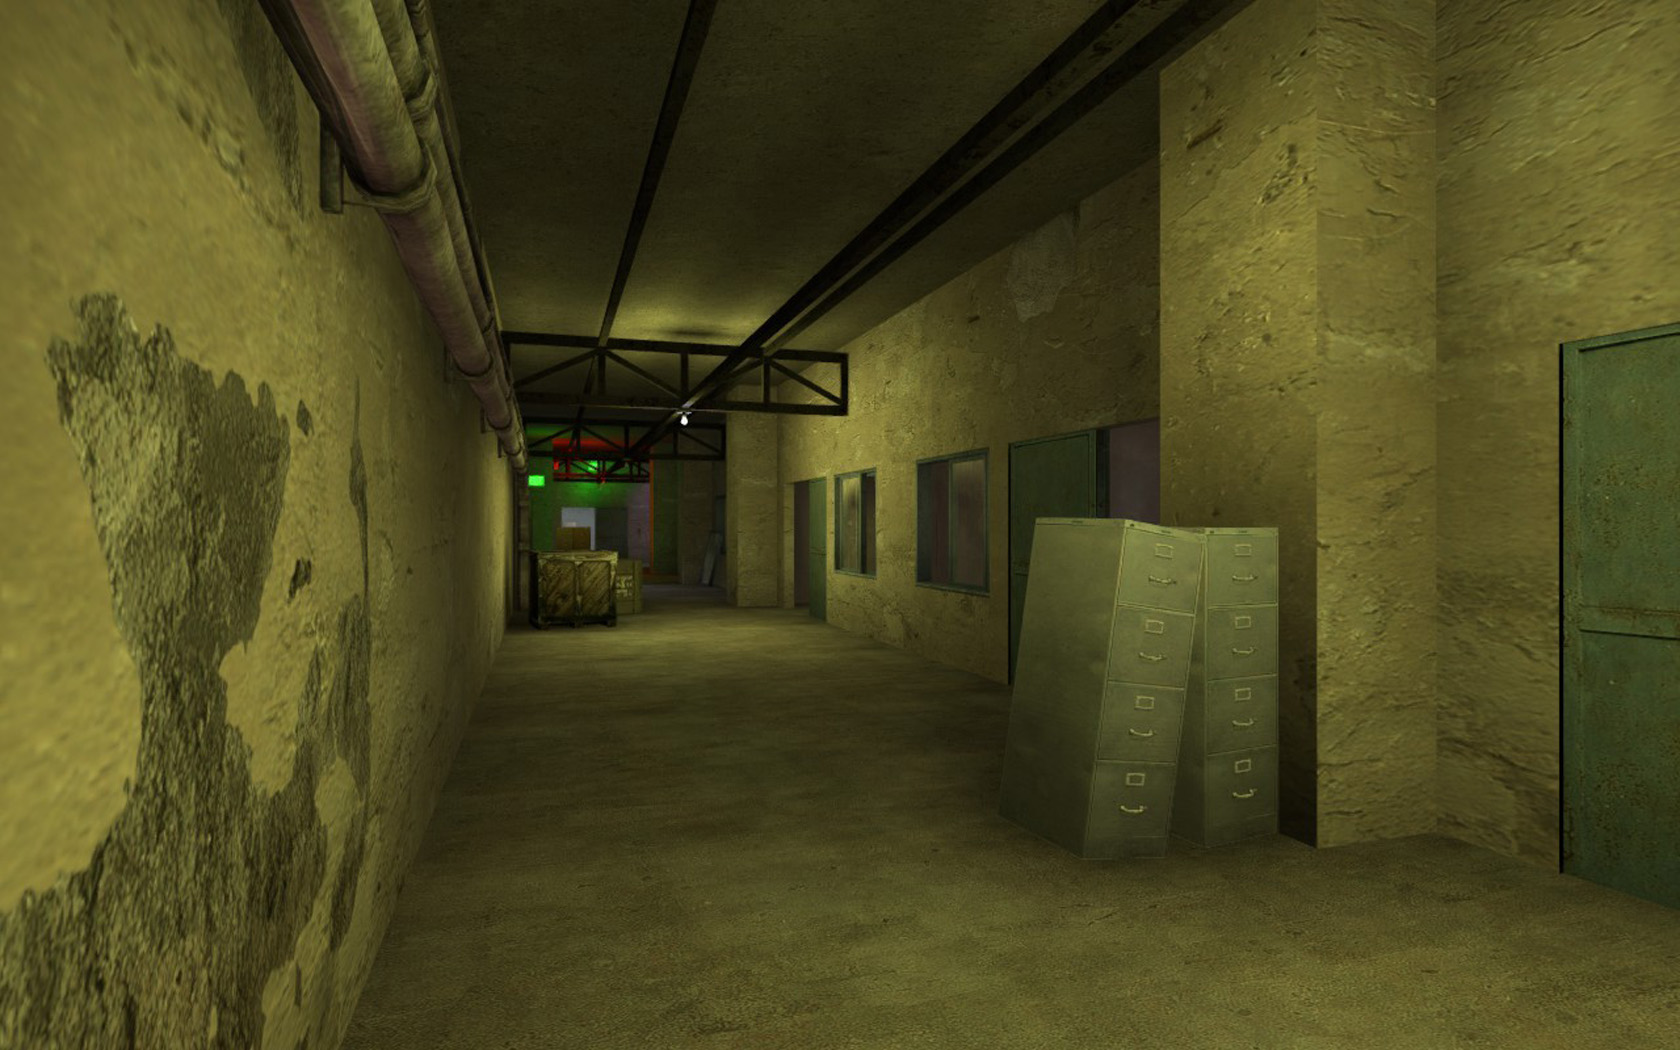 counter-strike.biz-maps-csgo-cs-camouflage-scr-03